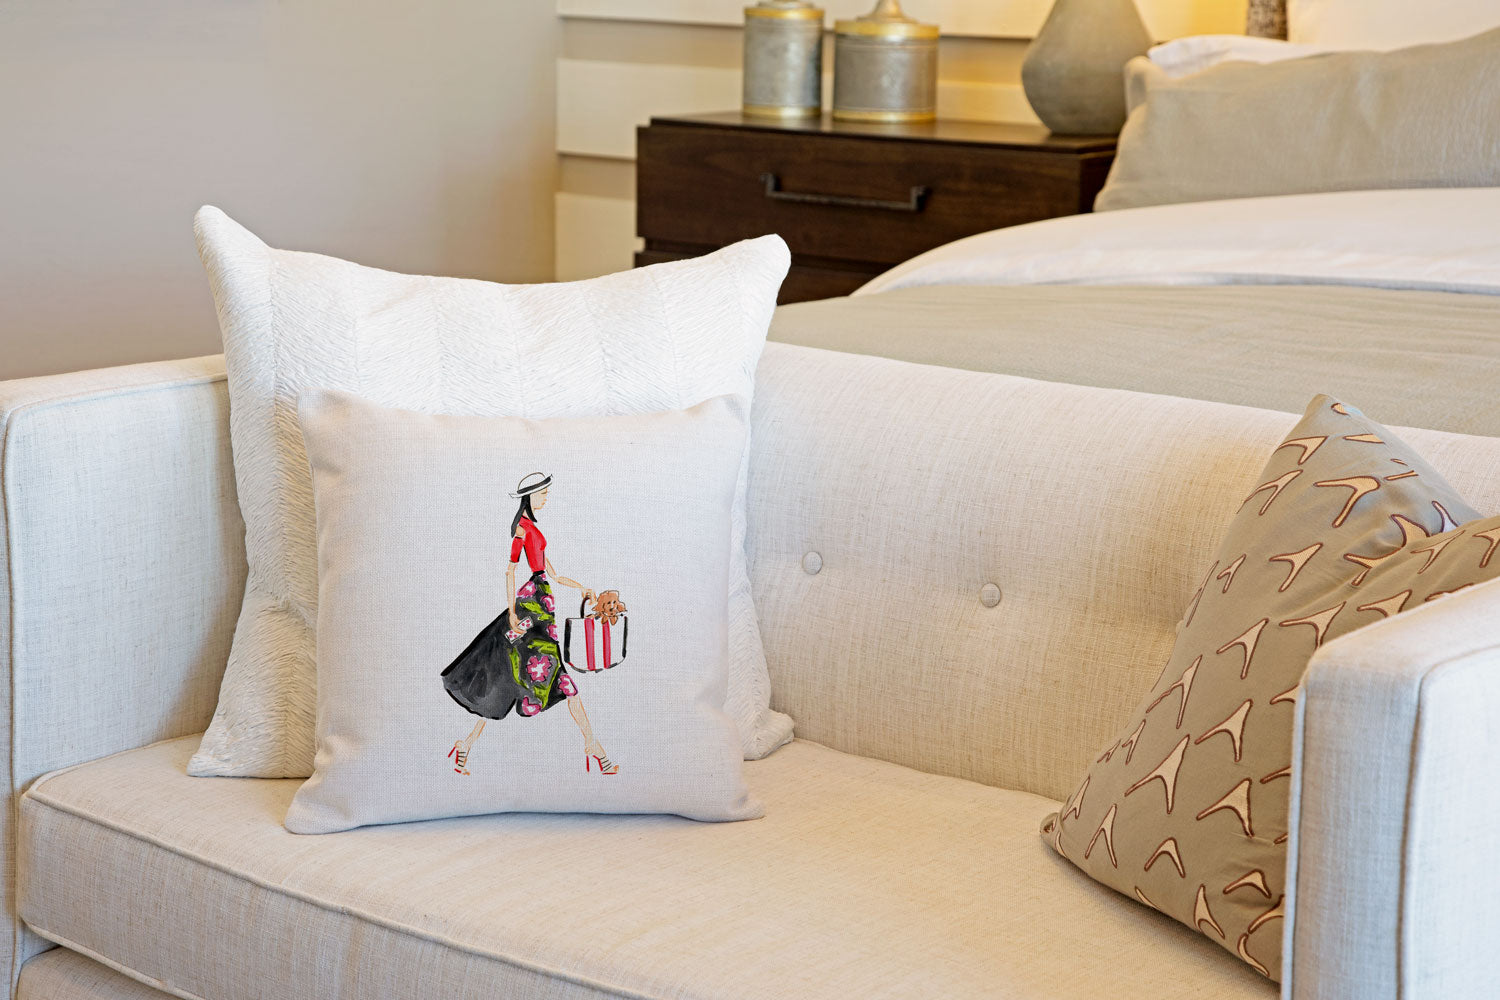 Runway Throw Pillow Cover - Fashion Illustrations Throw Pillow Cover Collection-Di Lewis